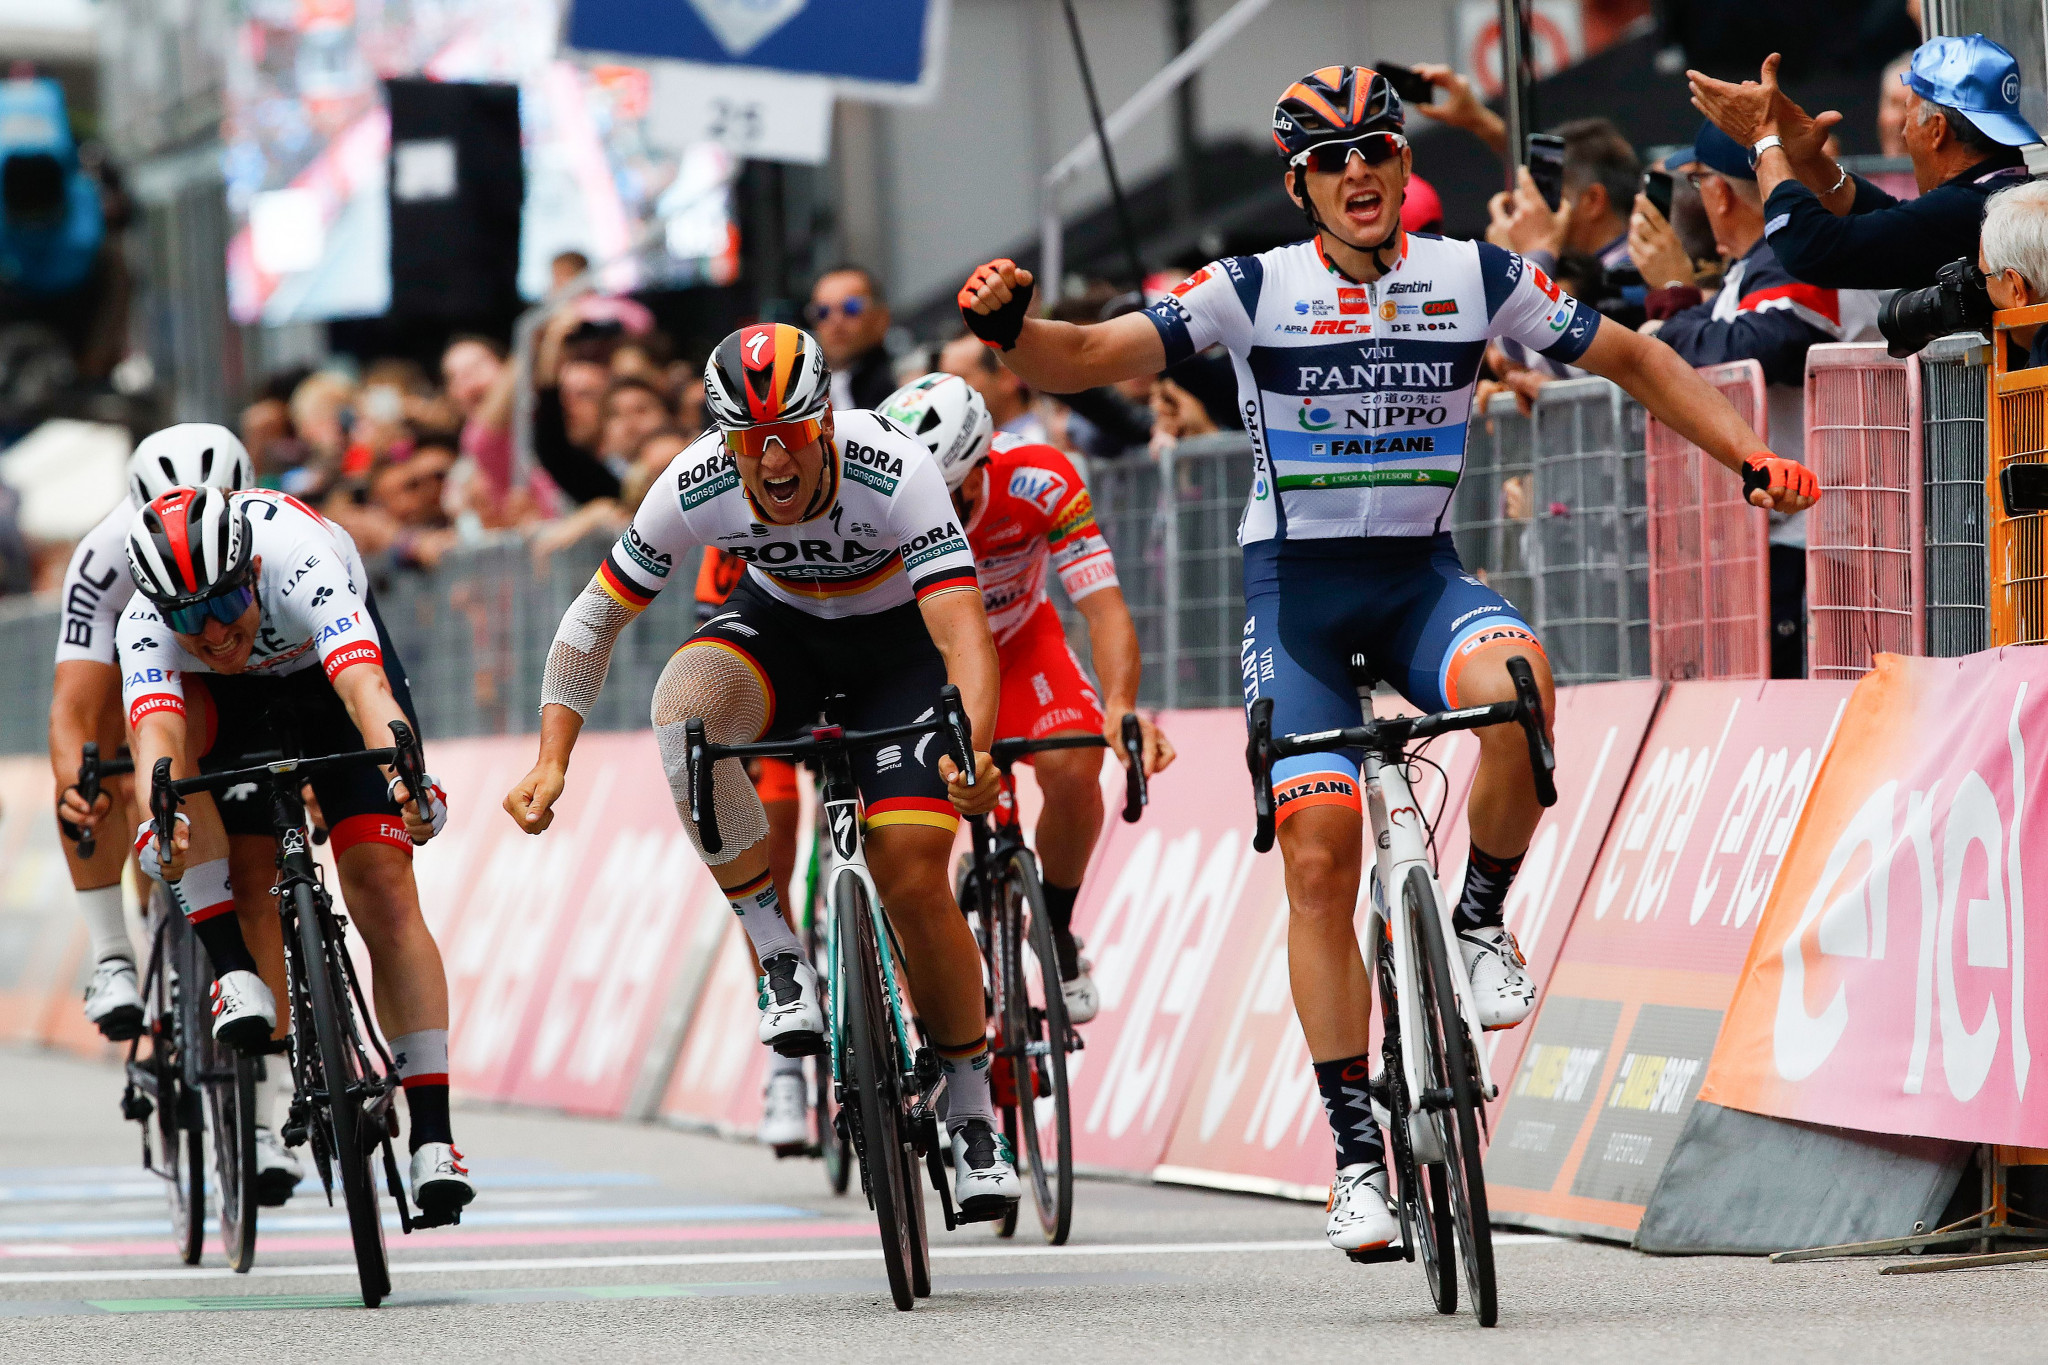 Cima victorious on stage 18 of Giro d'Italia as Carapaz keeps hold of general classification lead